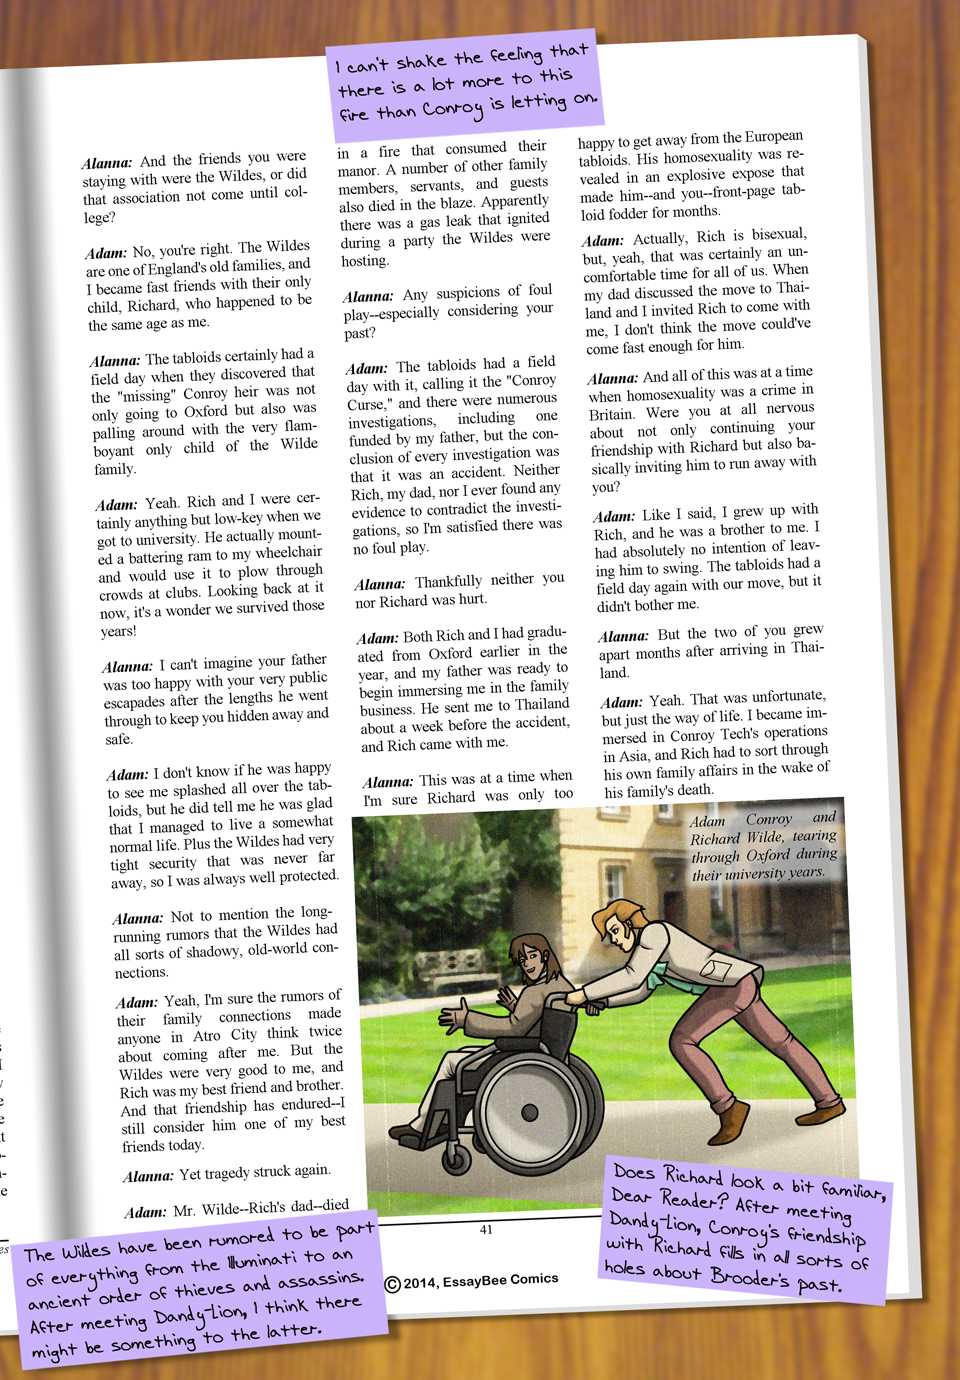 Interleude--Faces Magazine Interview 3 Page 4